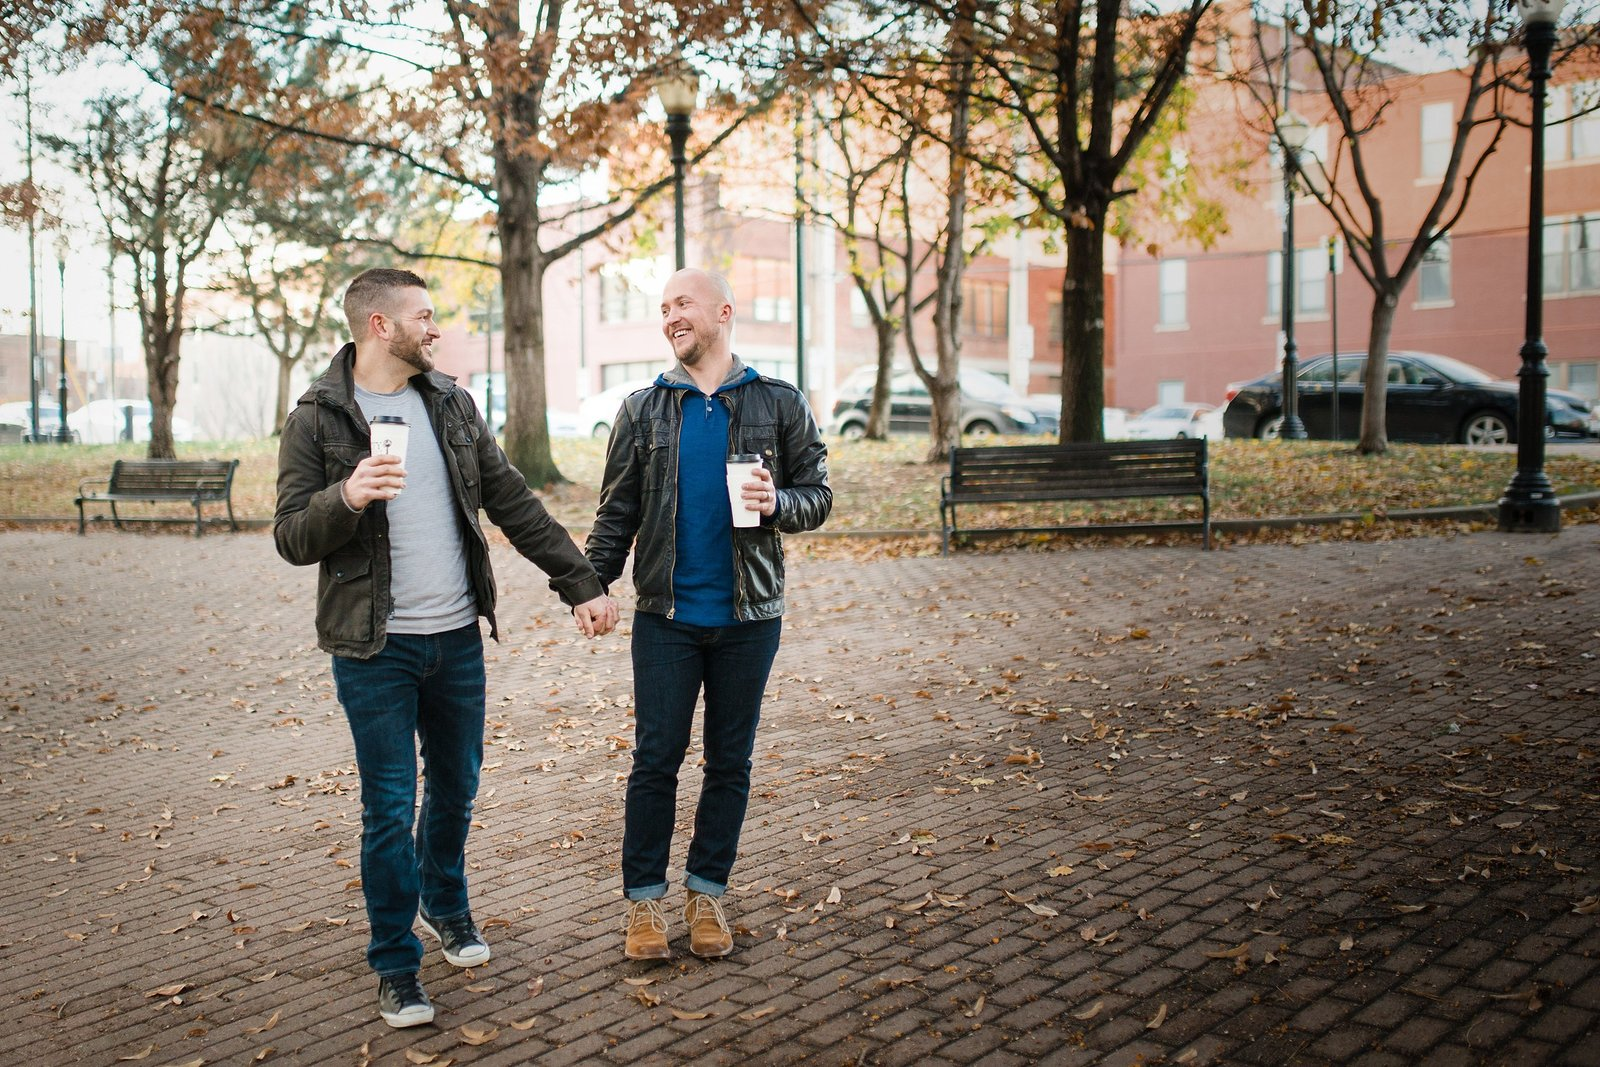 LGBTQ friendly engagement photographer. LGBTQ friendly wedding photographer.  Same sex wedding photos. Same sex engagement photos. KC same sex engagement photos